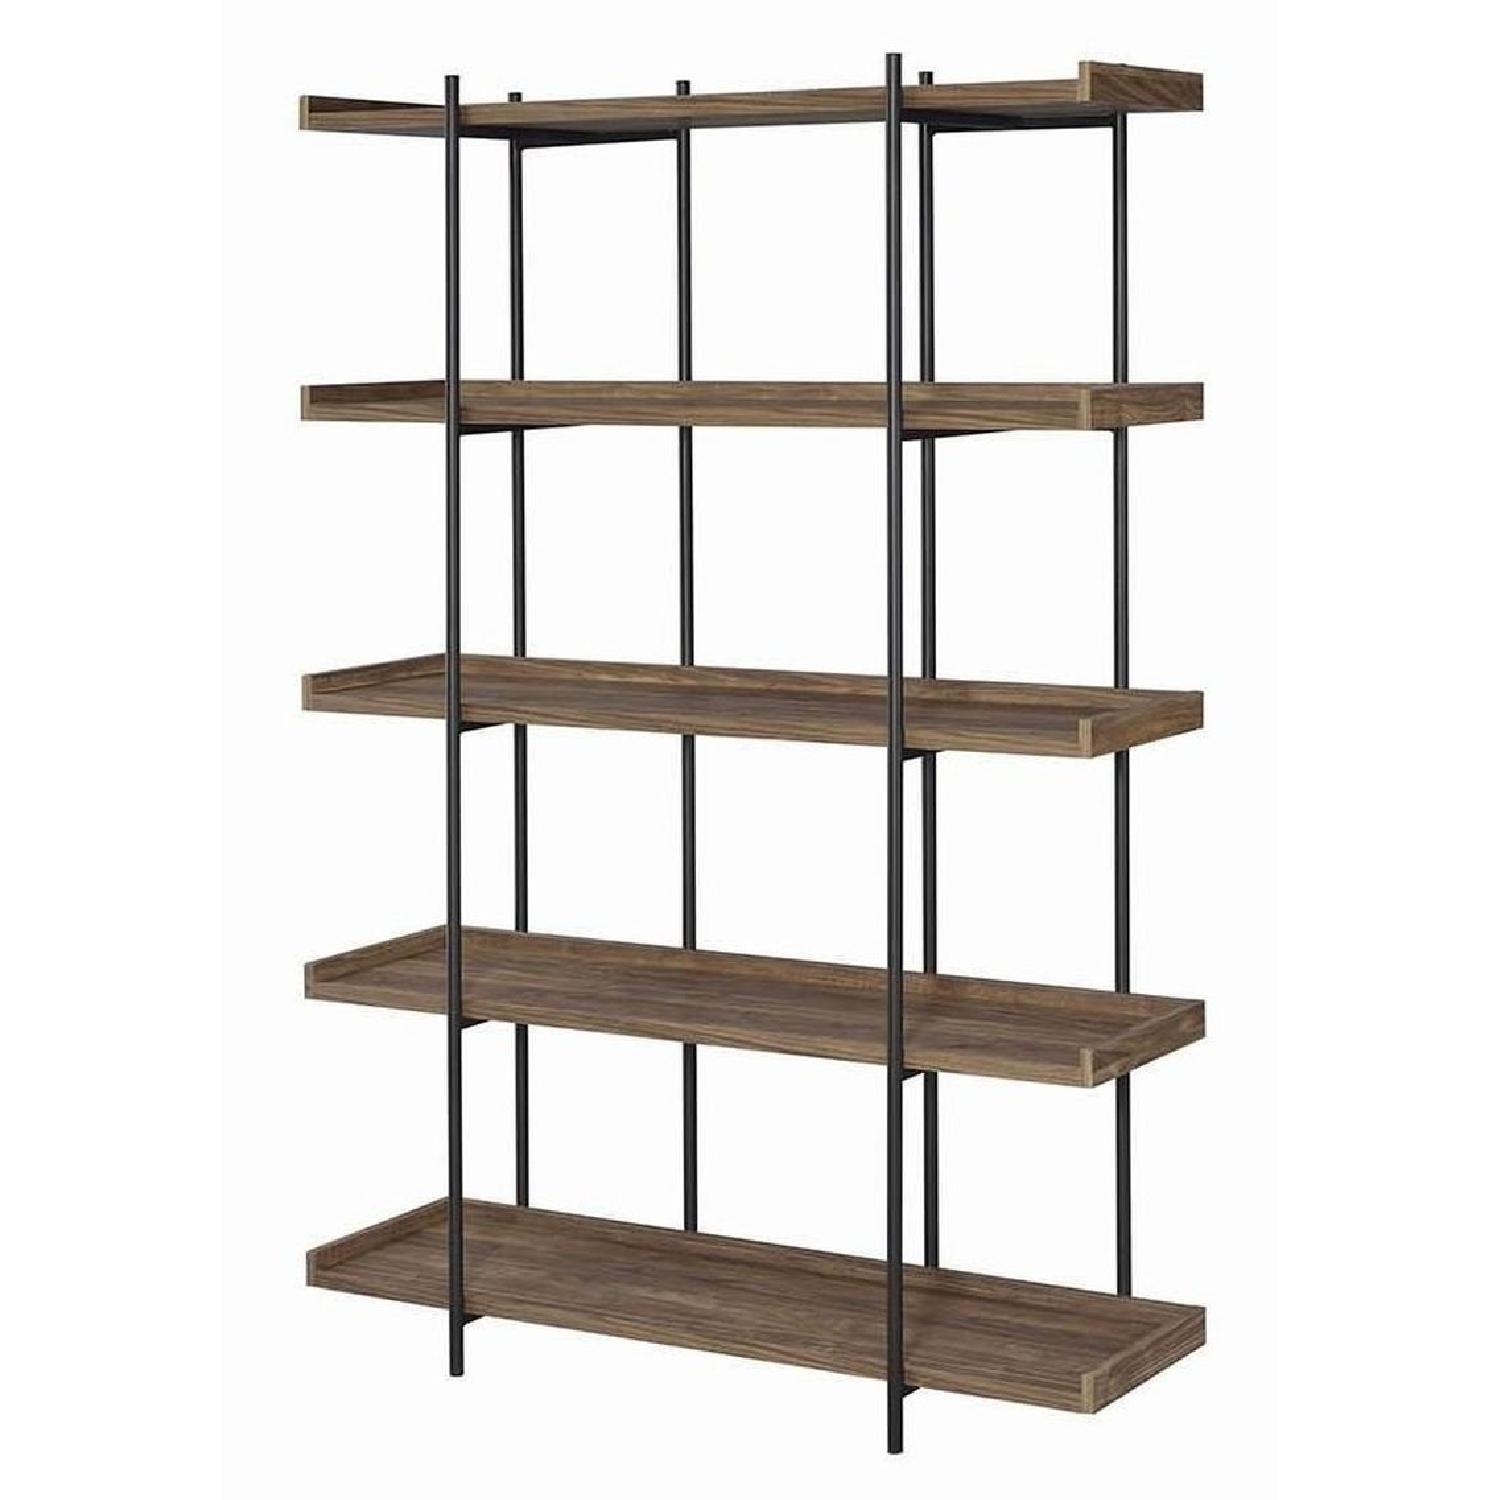 Industrial Style 5-Shelves Bookcase in Aged Walnut Finish - image-3